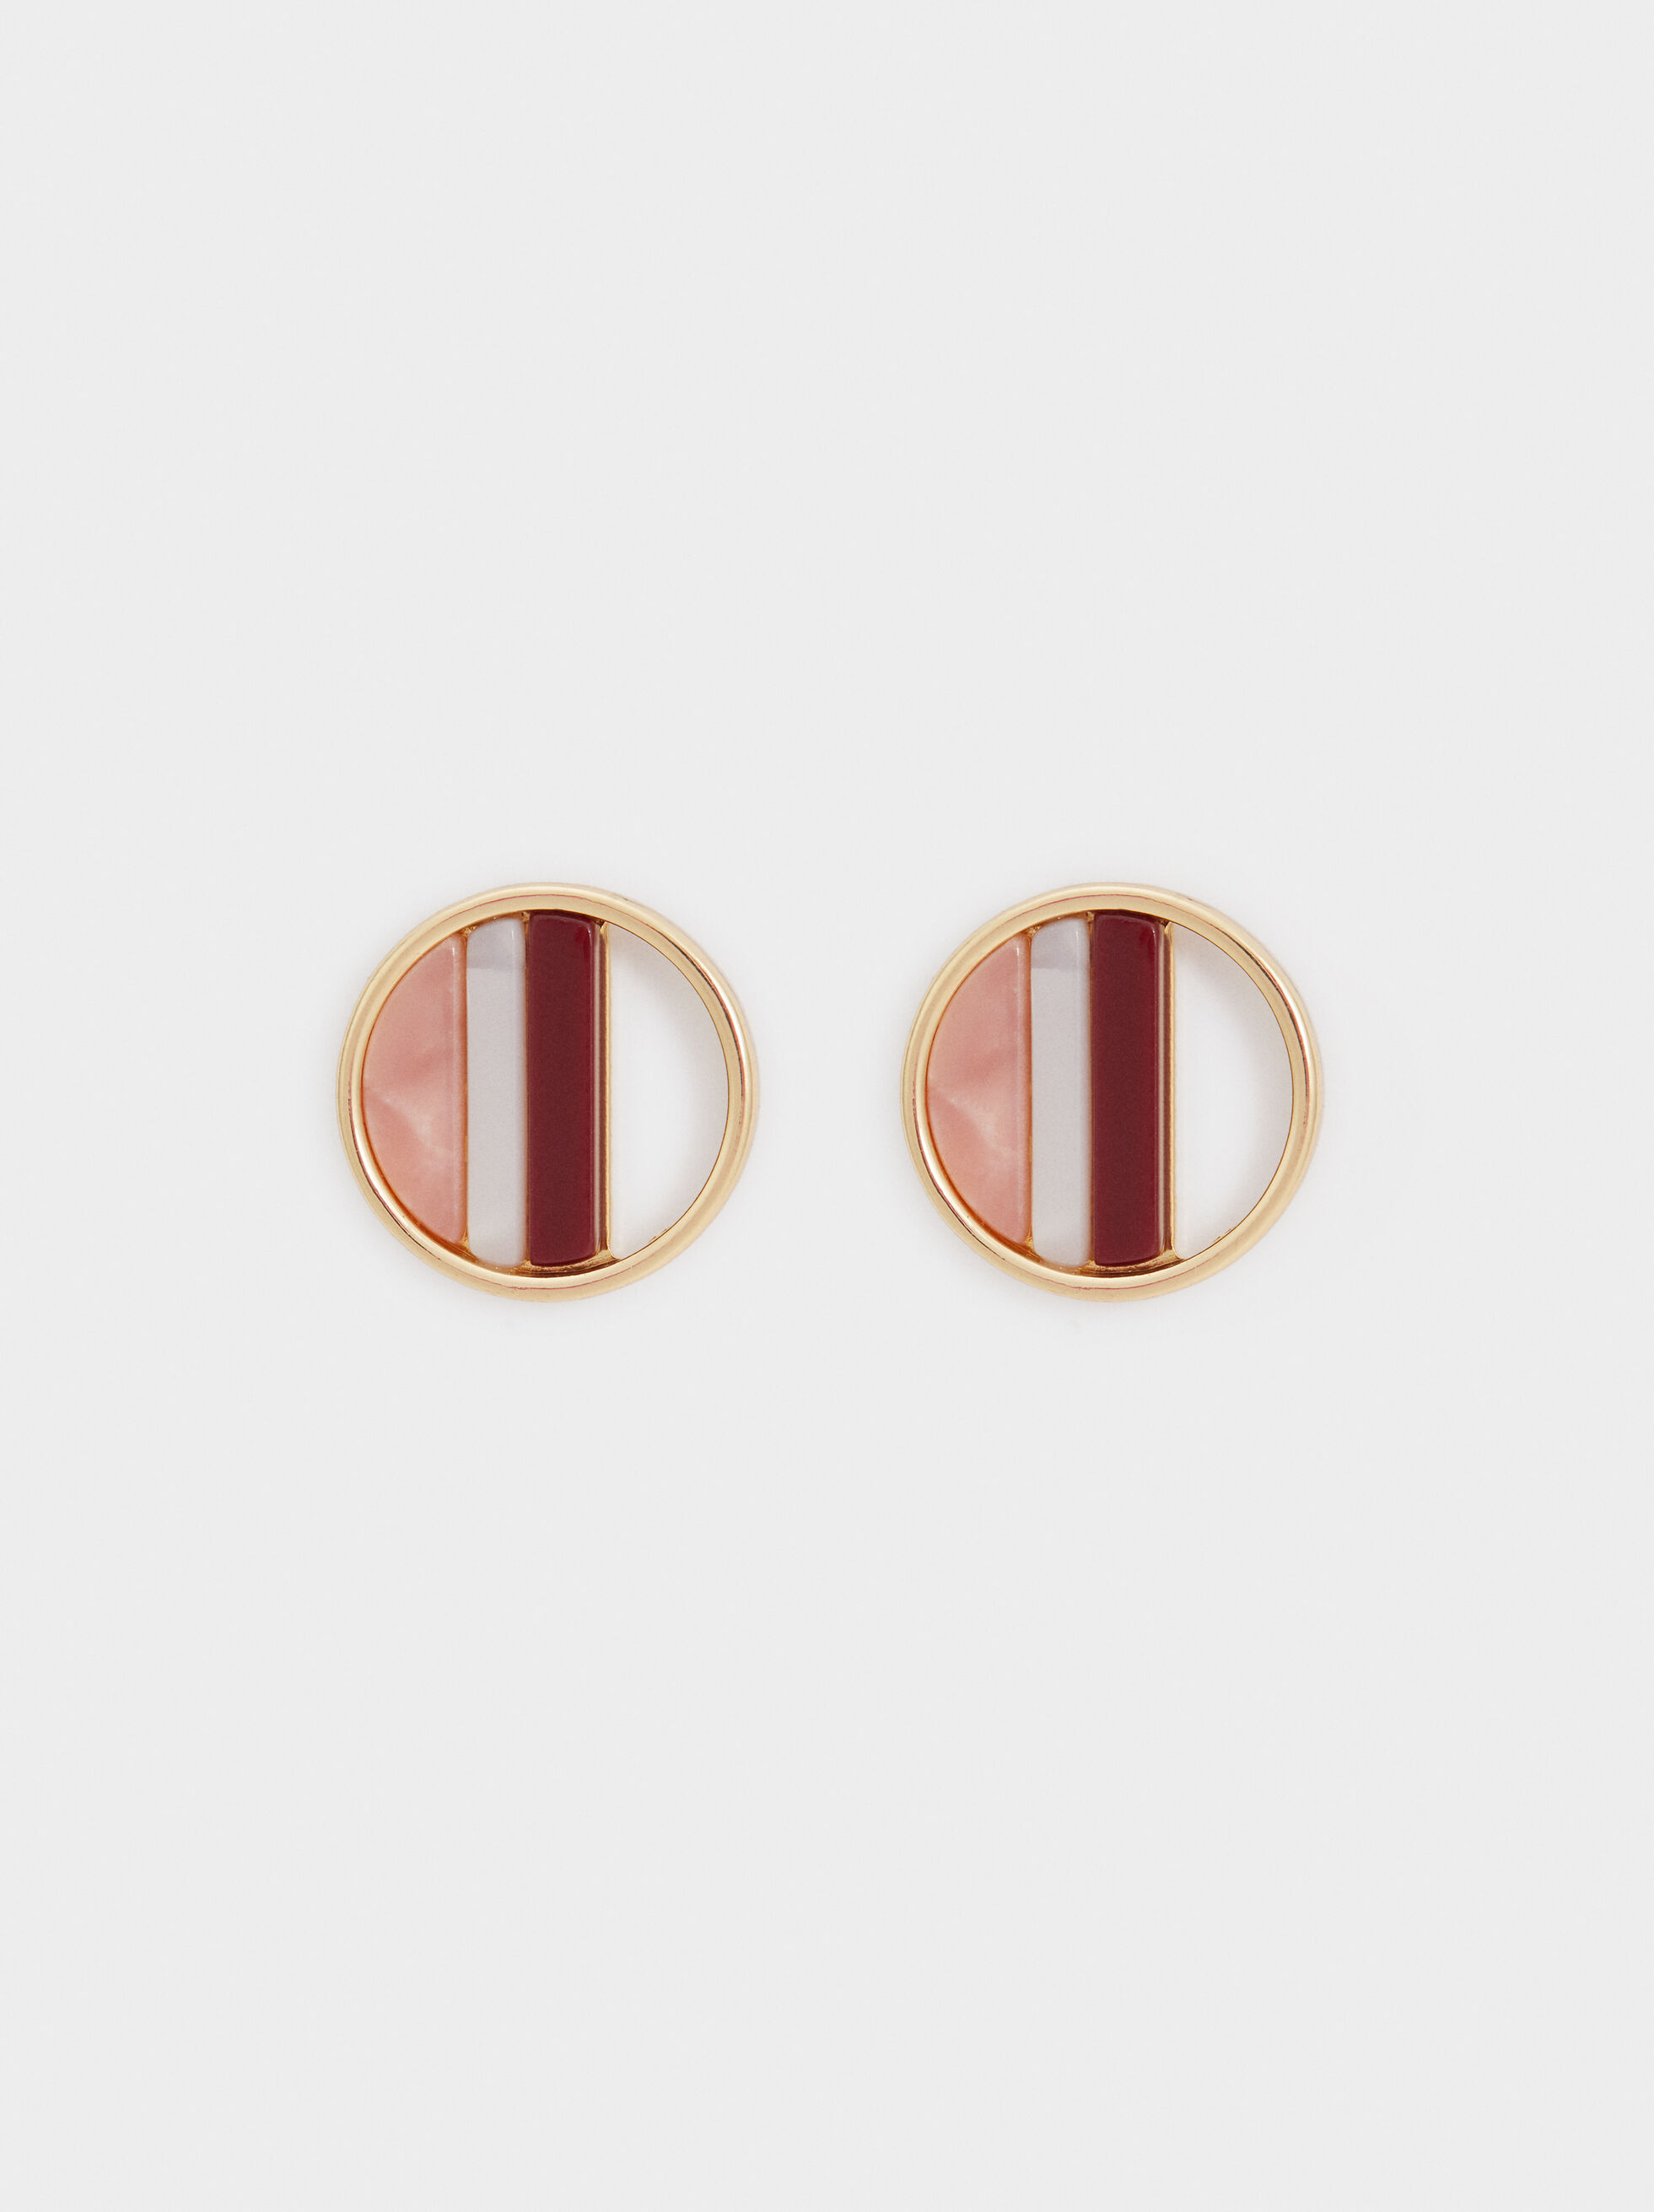 Land Circular Studs, Multicolor, hi-res